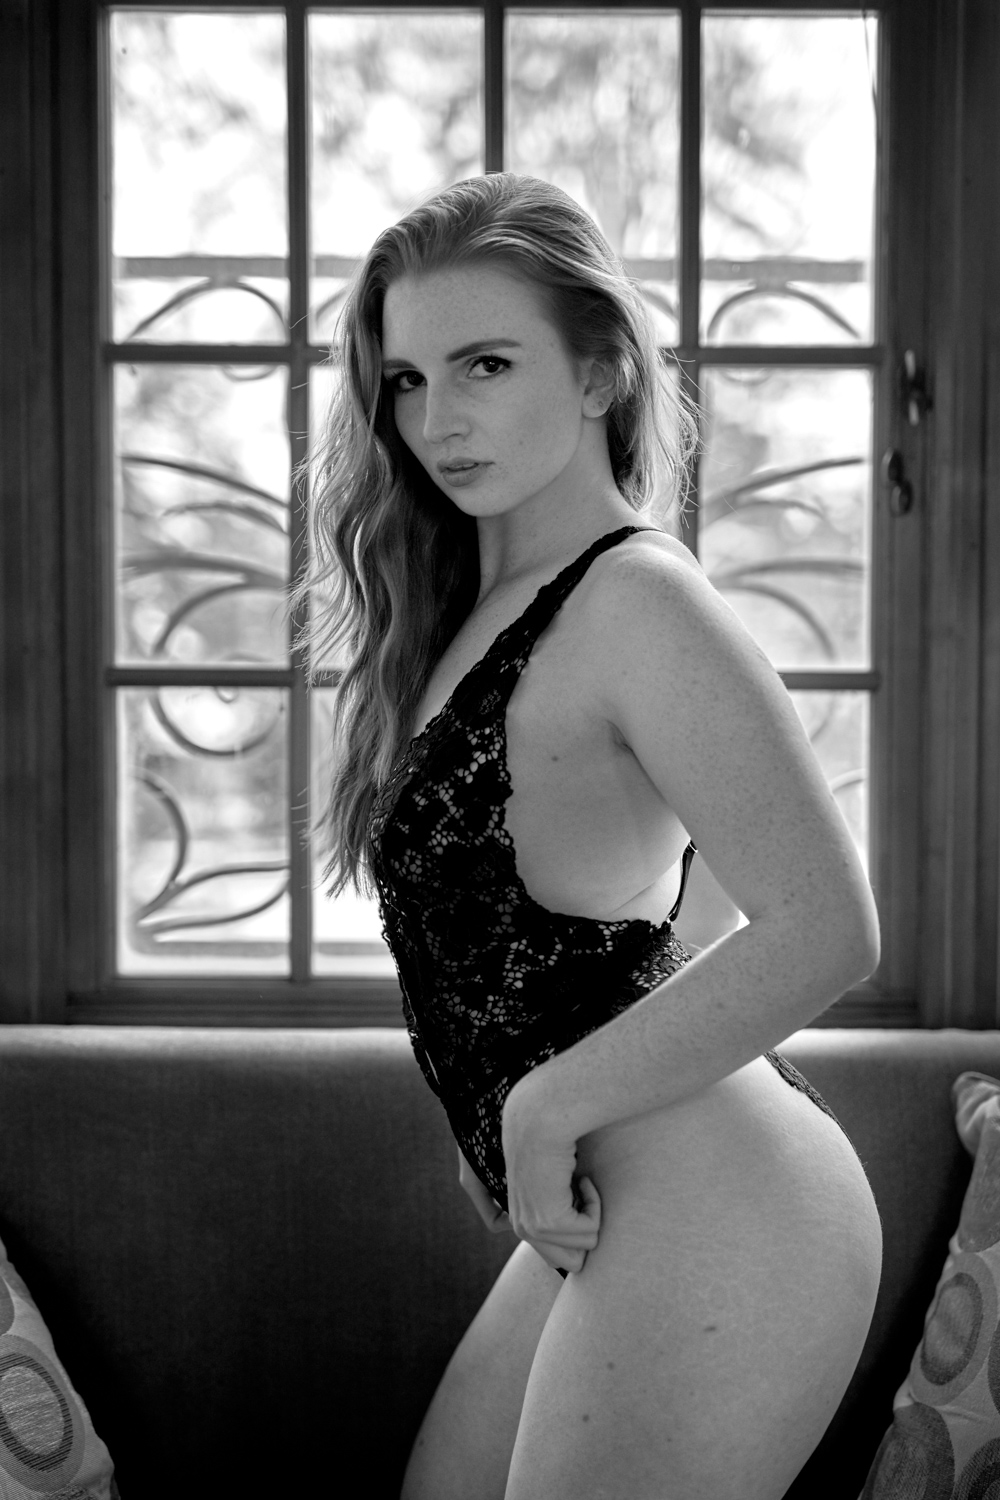 16-classy-ladies-glamourous-photography-in-home-private-boudoir-photographer-sexy-black-bodysuit-pictures-redhead-wife-girlfriend-gift-classy-unabashed-beauty-beautiful-intimate-lifestyle-photos-swimsuit-lingerie-hat-upscale-high-end-quality-elegant.jpg